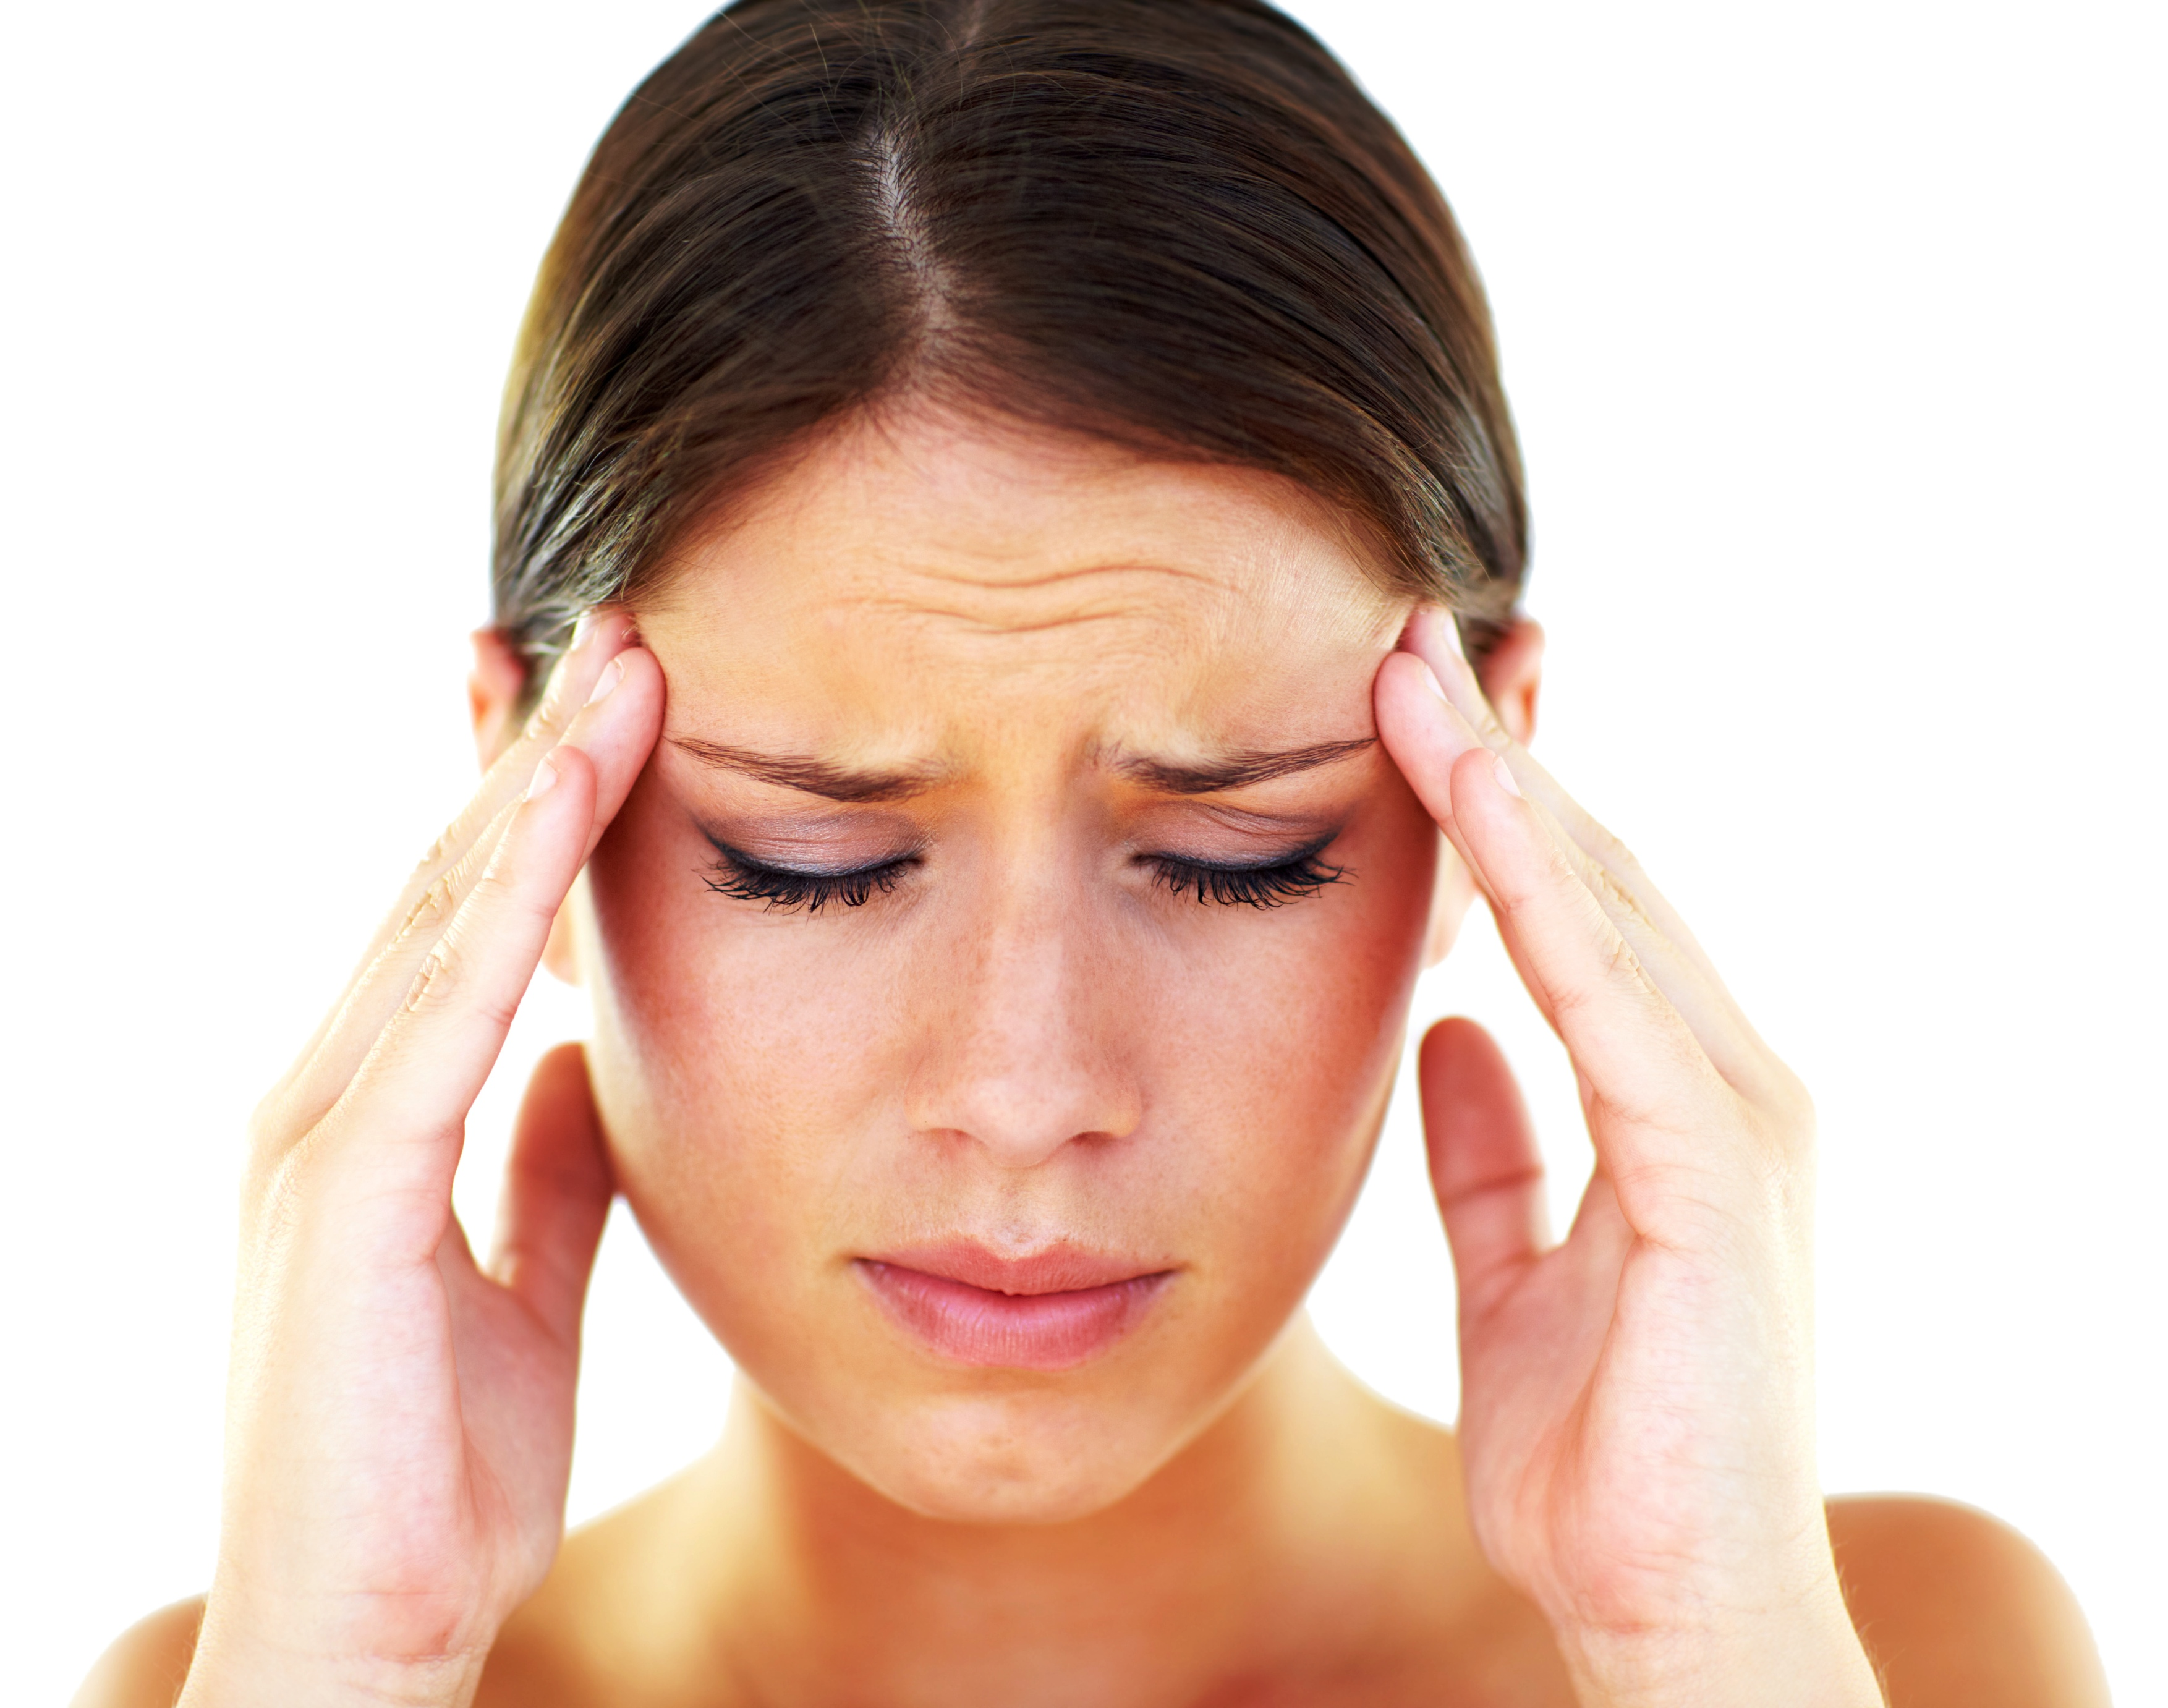 Did you know that an osteopath can help you with your headaches and migraines?